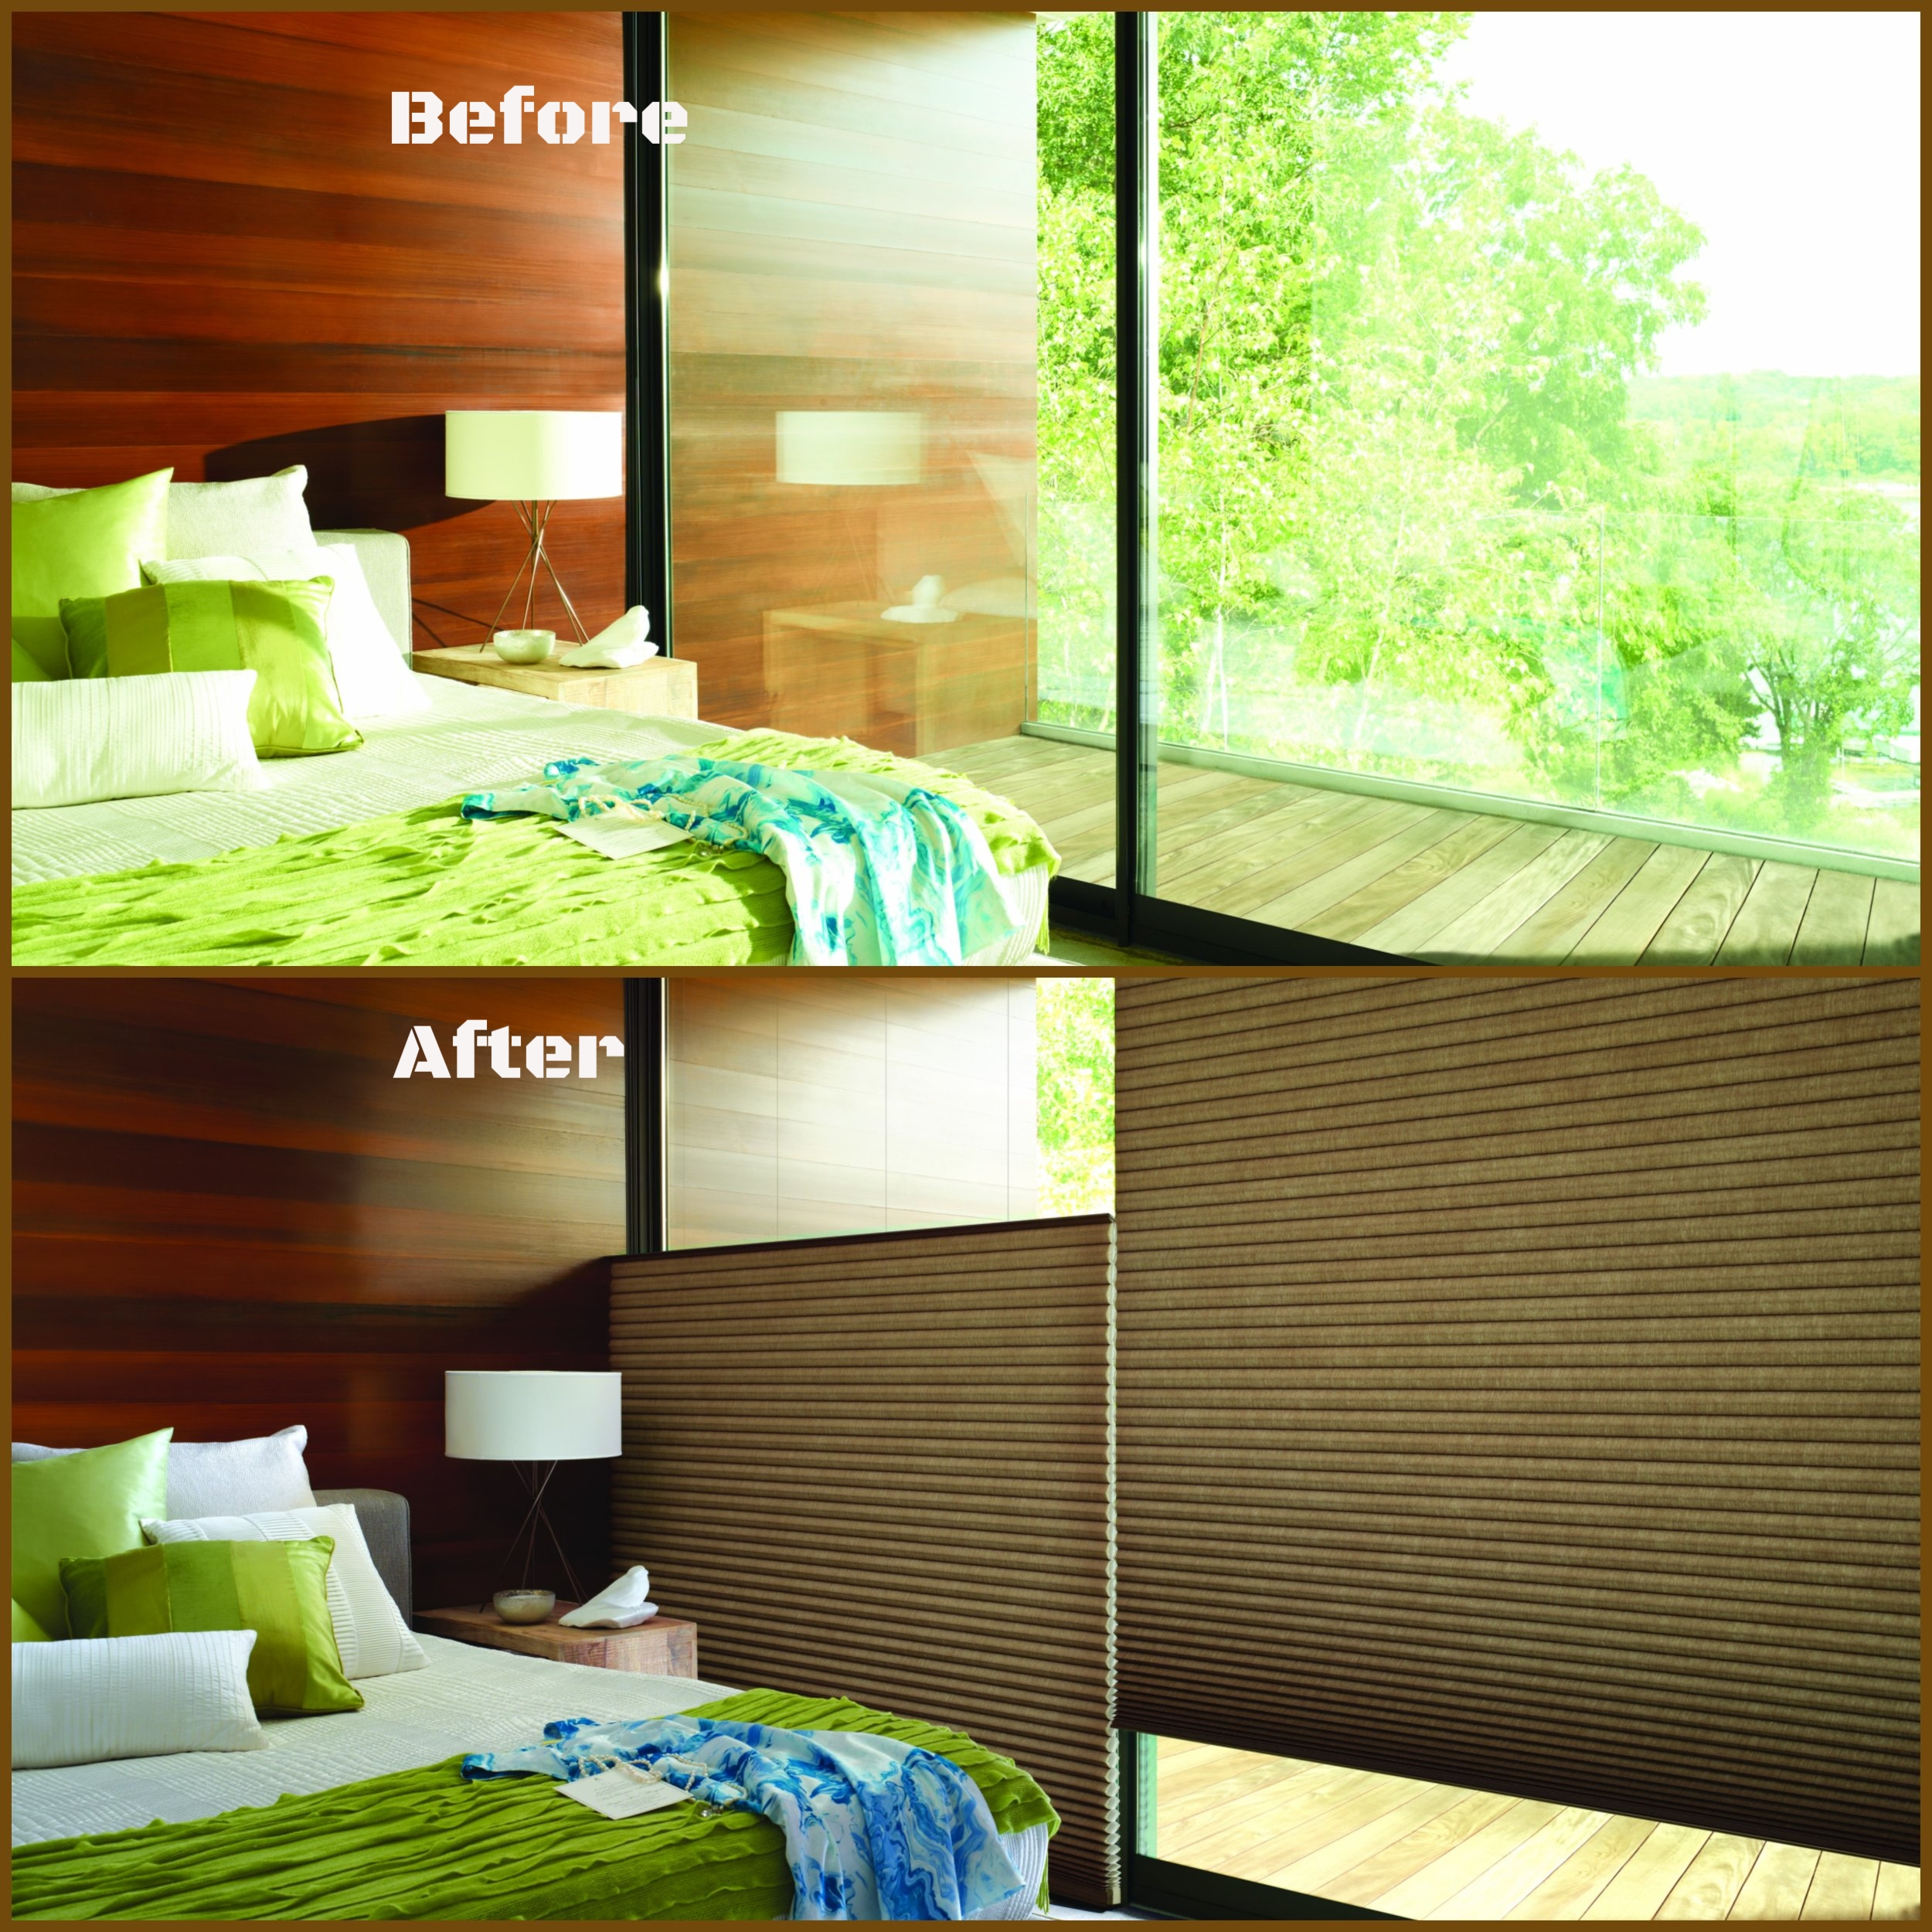 Please don't have a stack attack! Our feature and star of the stack attack show are Hunter Douglas Duettes. The best part is these shades do not require a lot of stack room at the top either. Top-down/bottom-up, black-out shades are an absolute perfect fit for our #15.